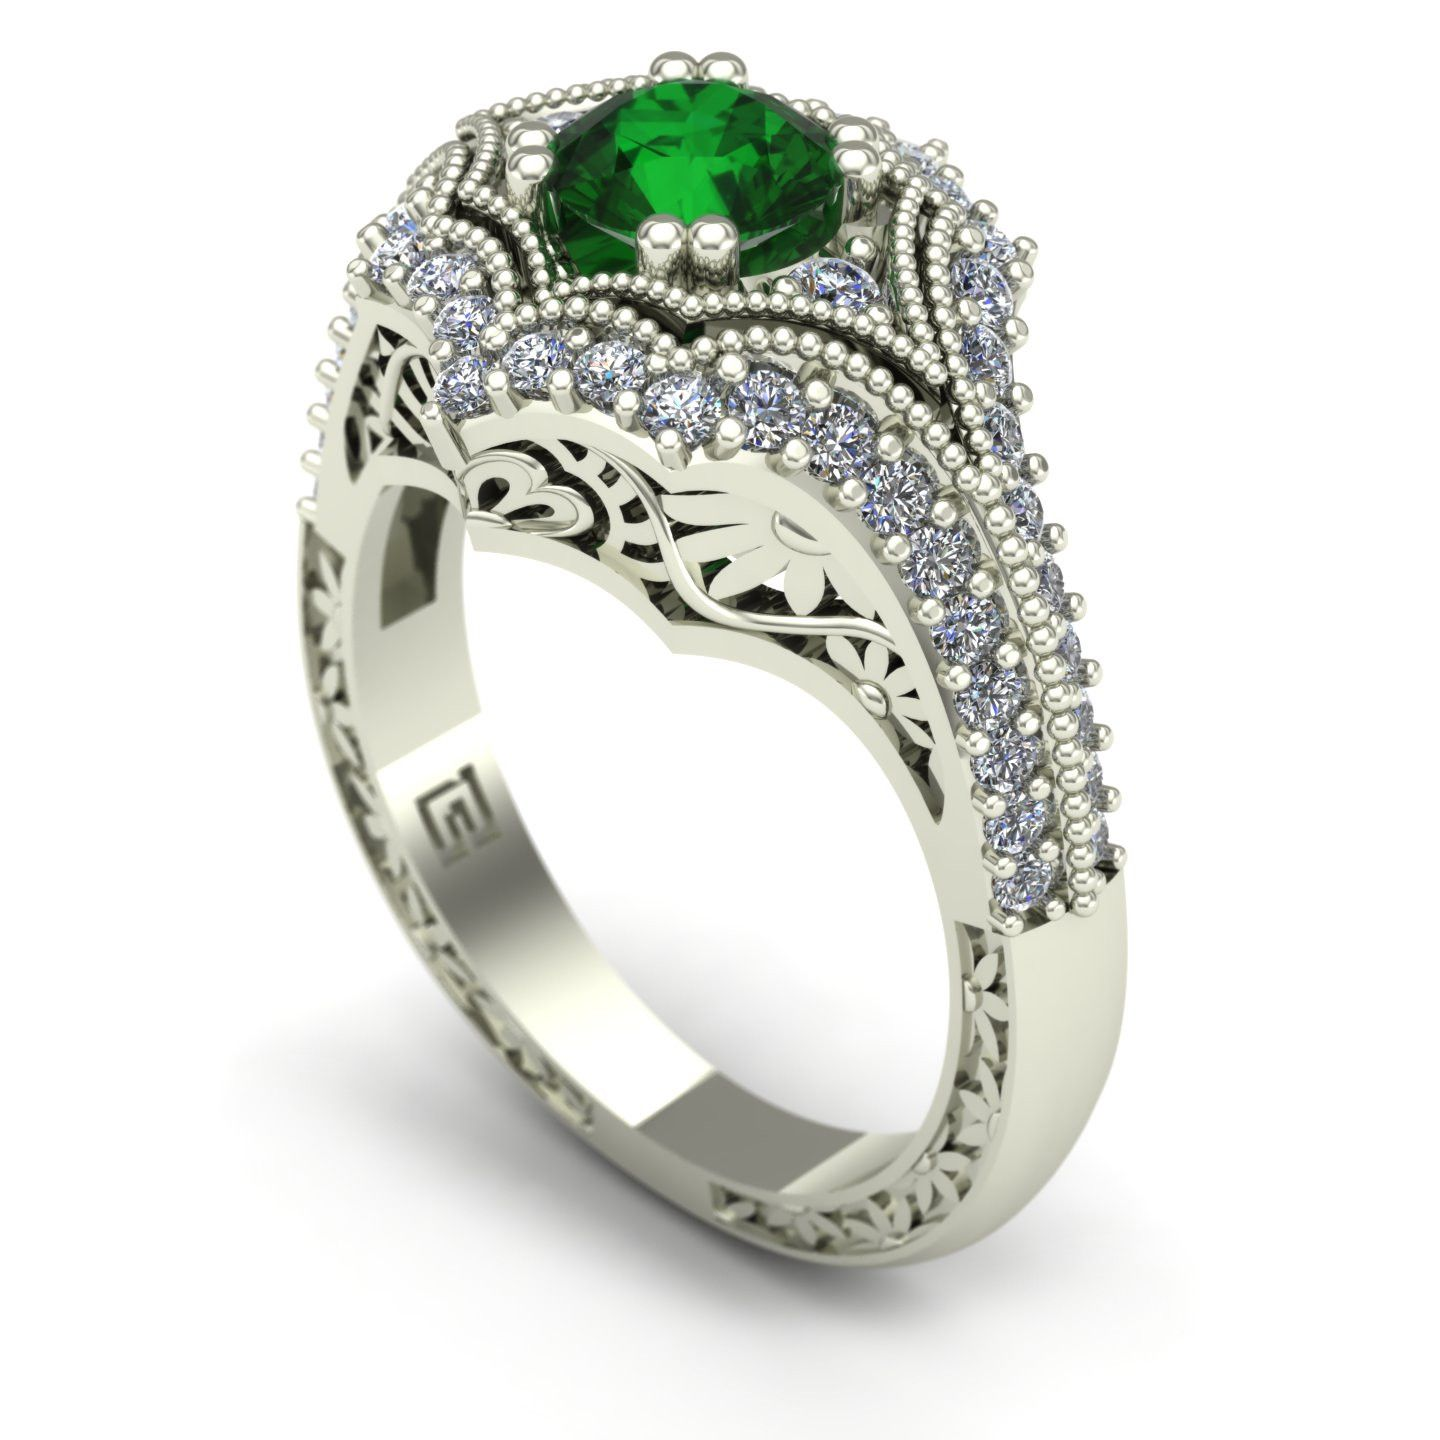 Emerald and diamond ring with floral carving in 14k white gold ...